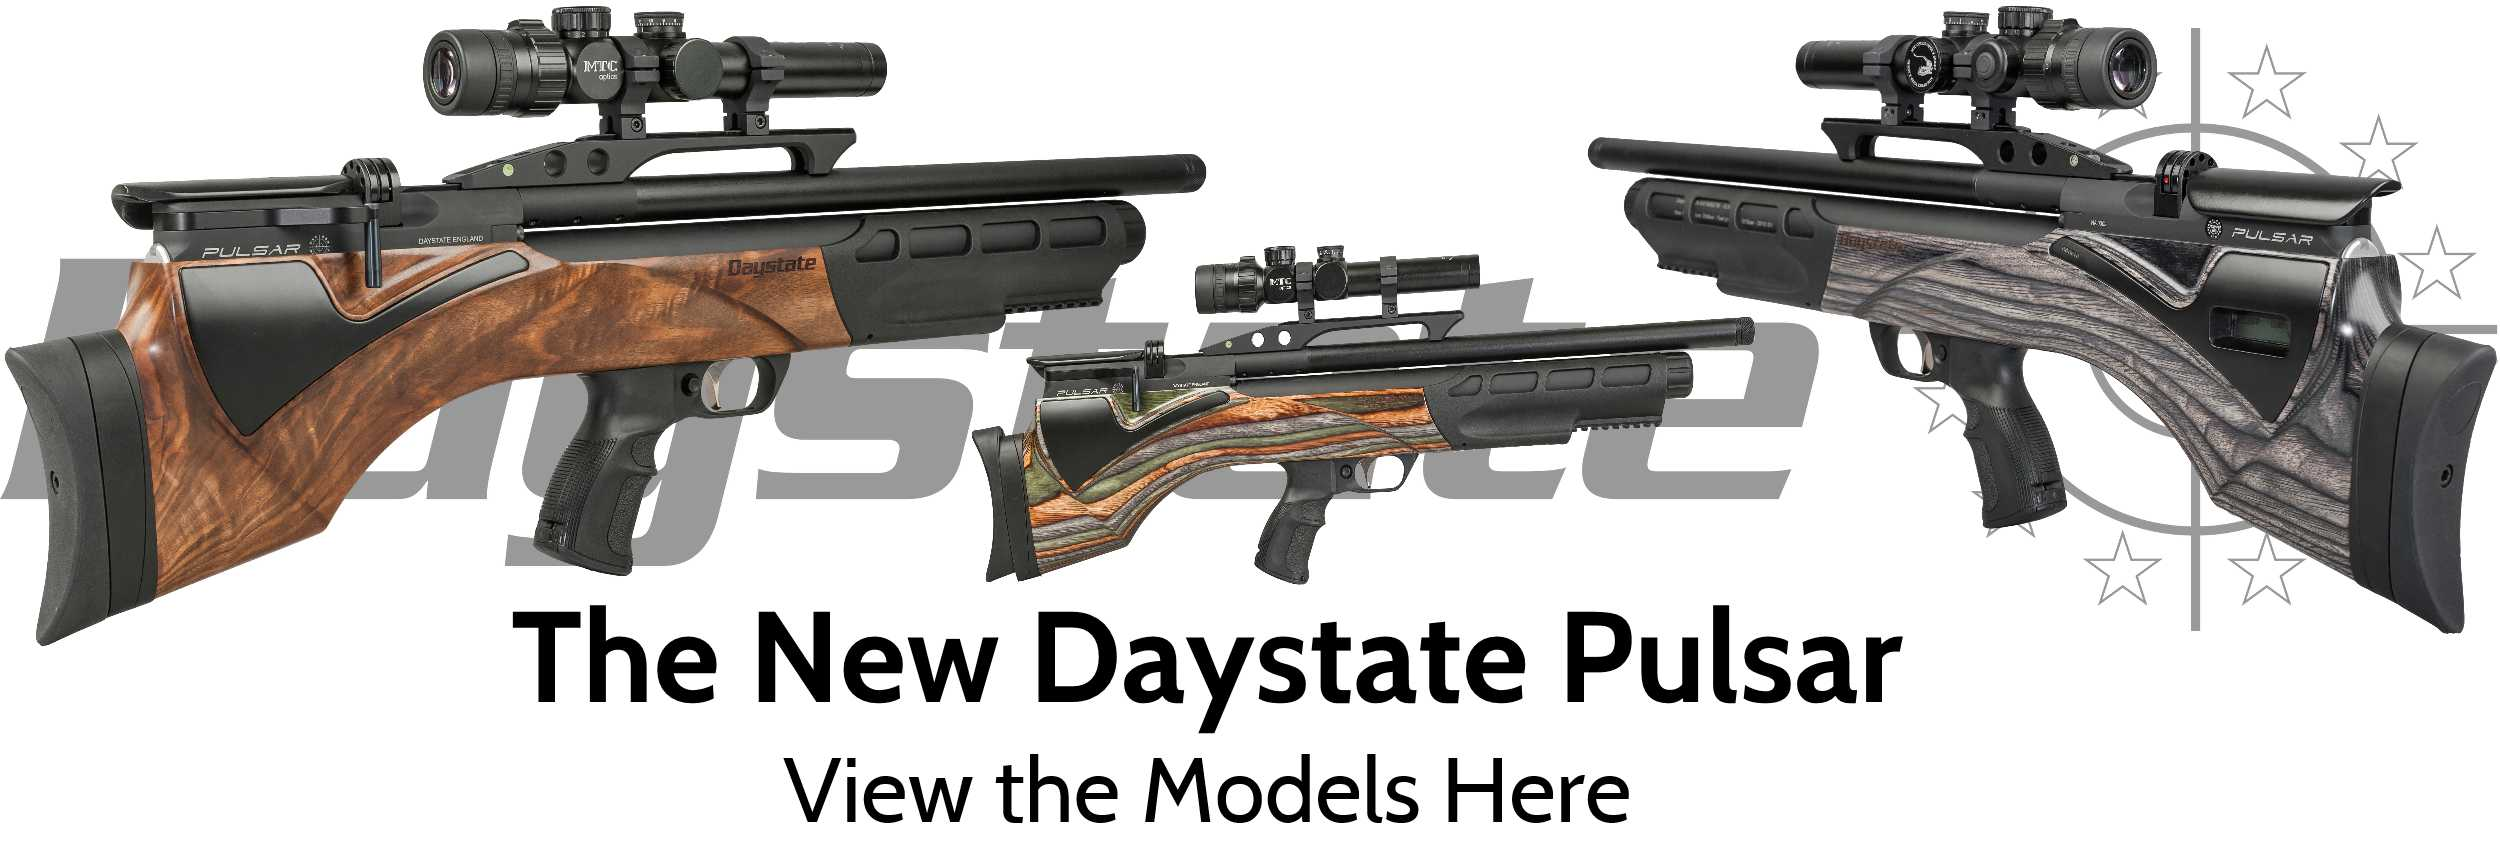 The New Daystate Pulsar Rifle